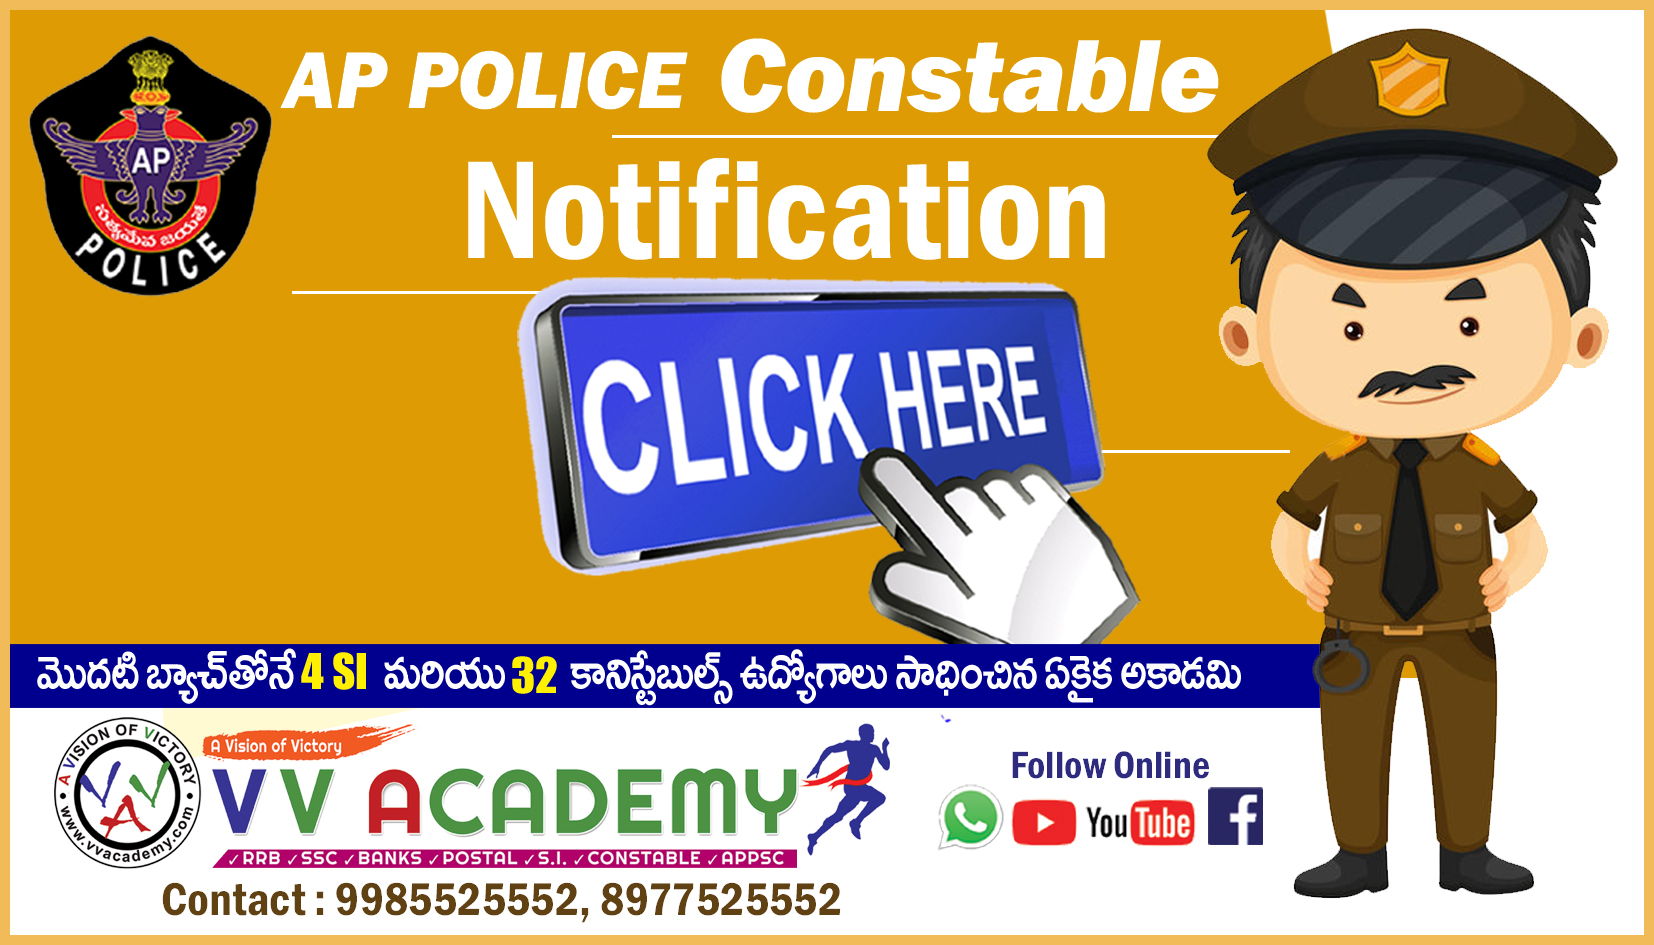 AP POLICE CONSTABLE NOTIFICATION 2018.